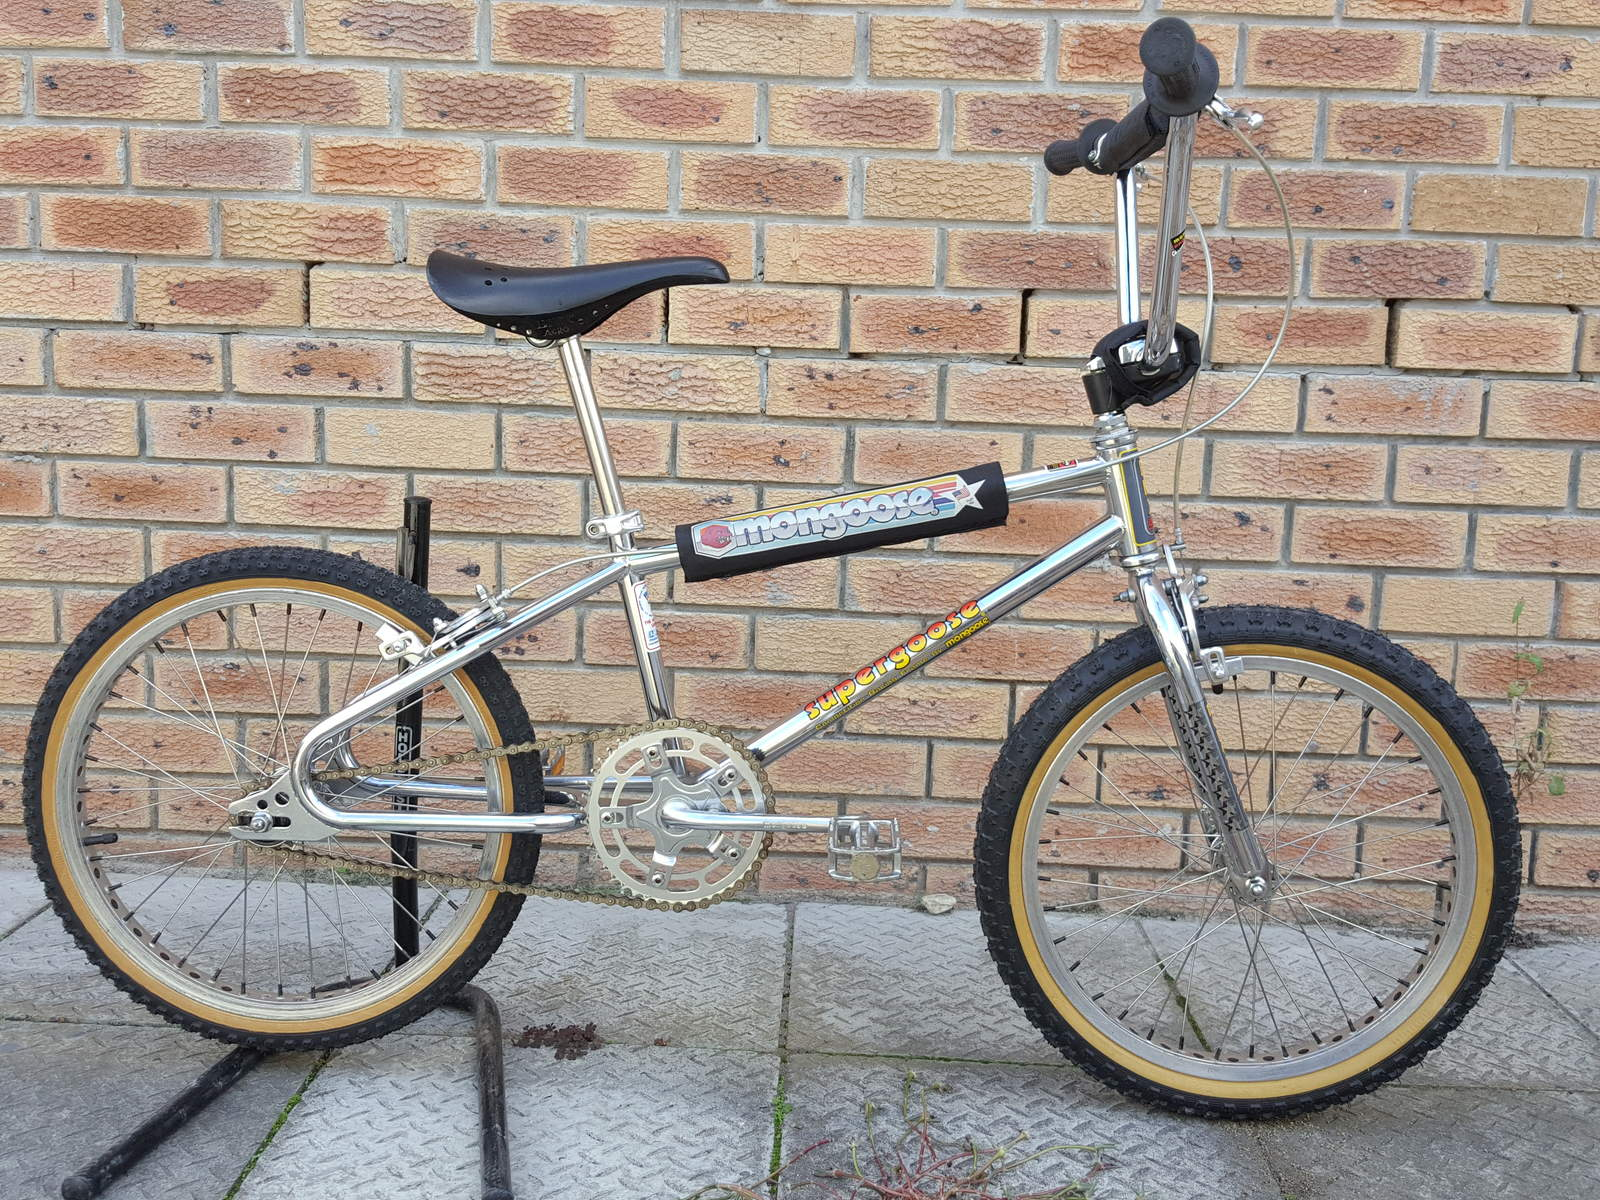 http://uploads.bmxmuseum.com/user-images/206240/20180512_1454085c0102e566.jpg